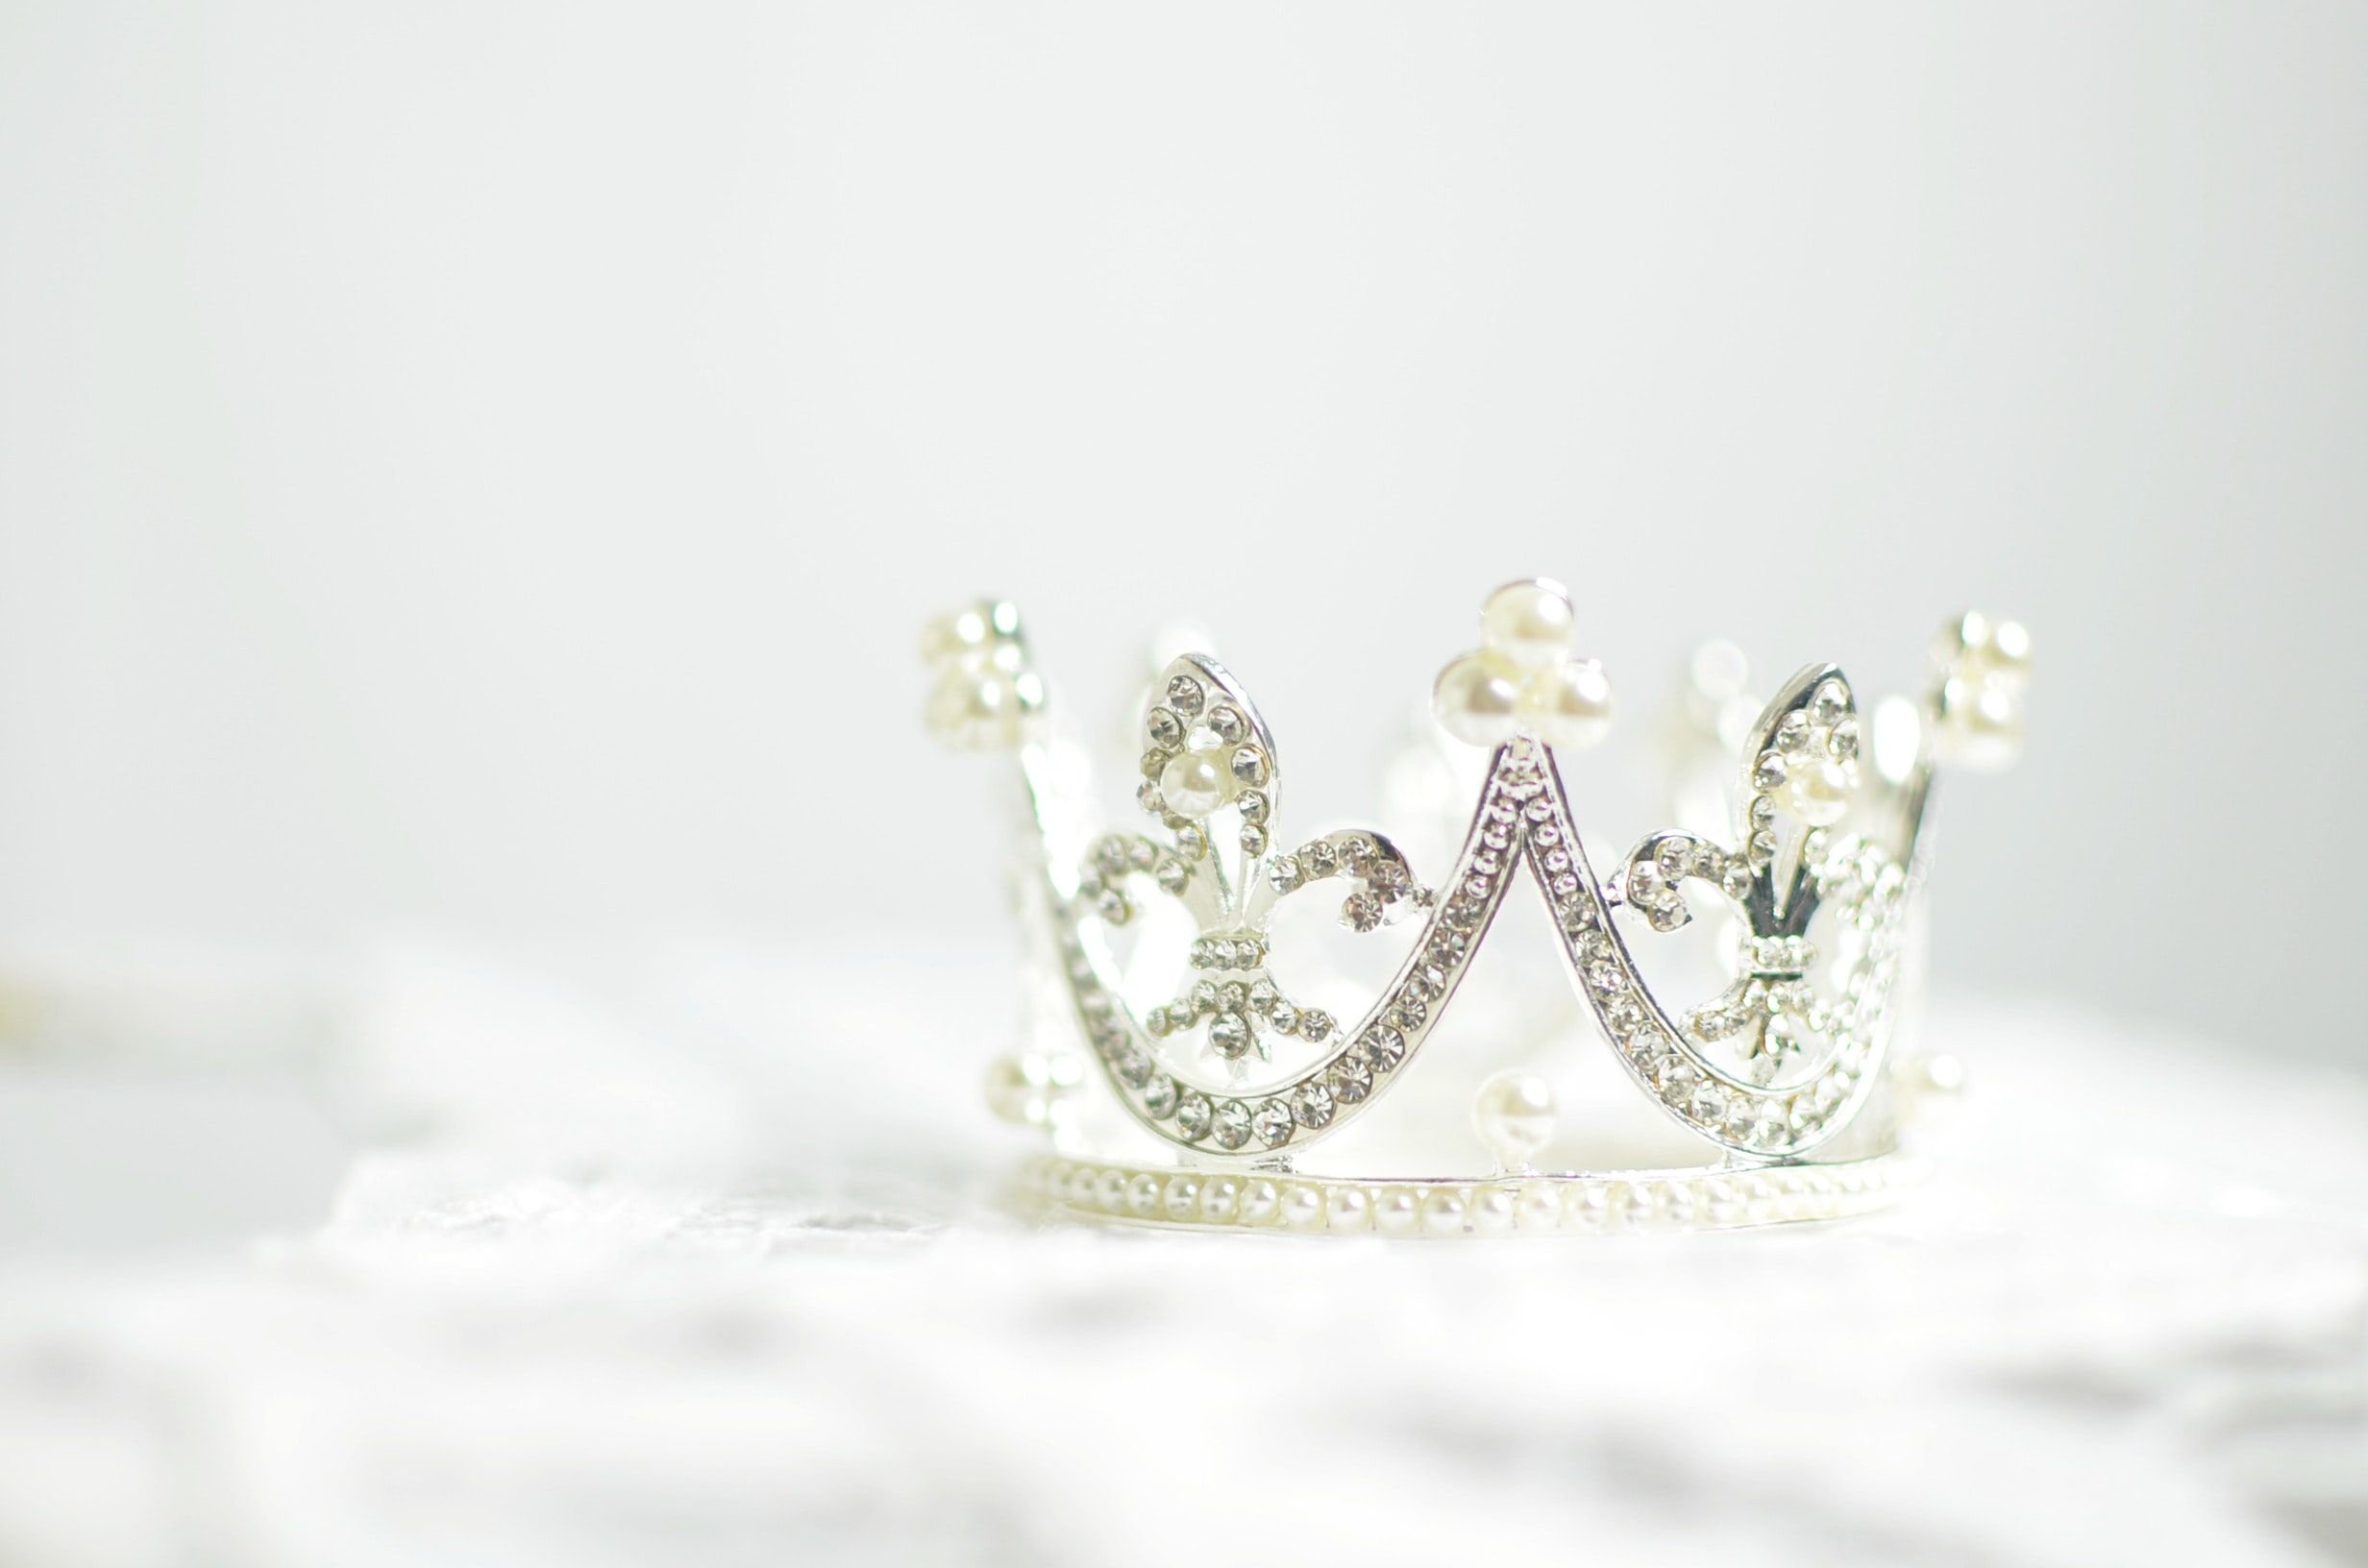 A Muslim Woman's Take on Pageant Culture